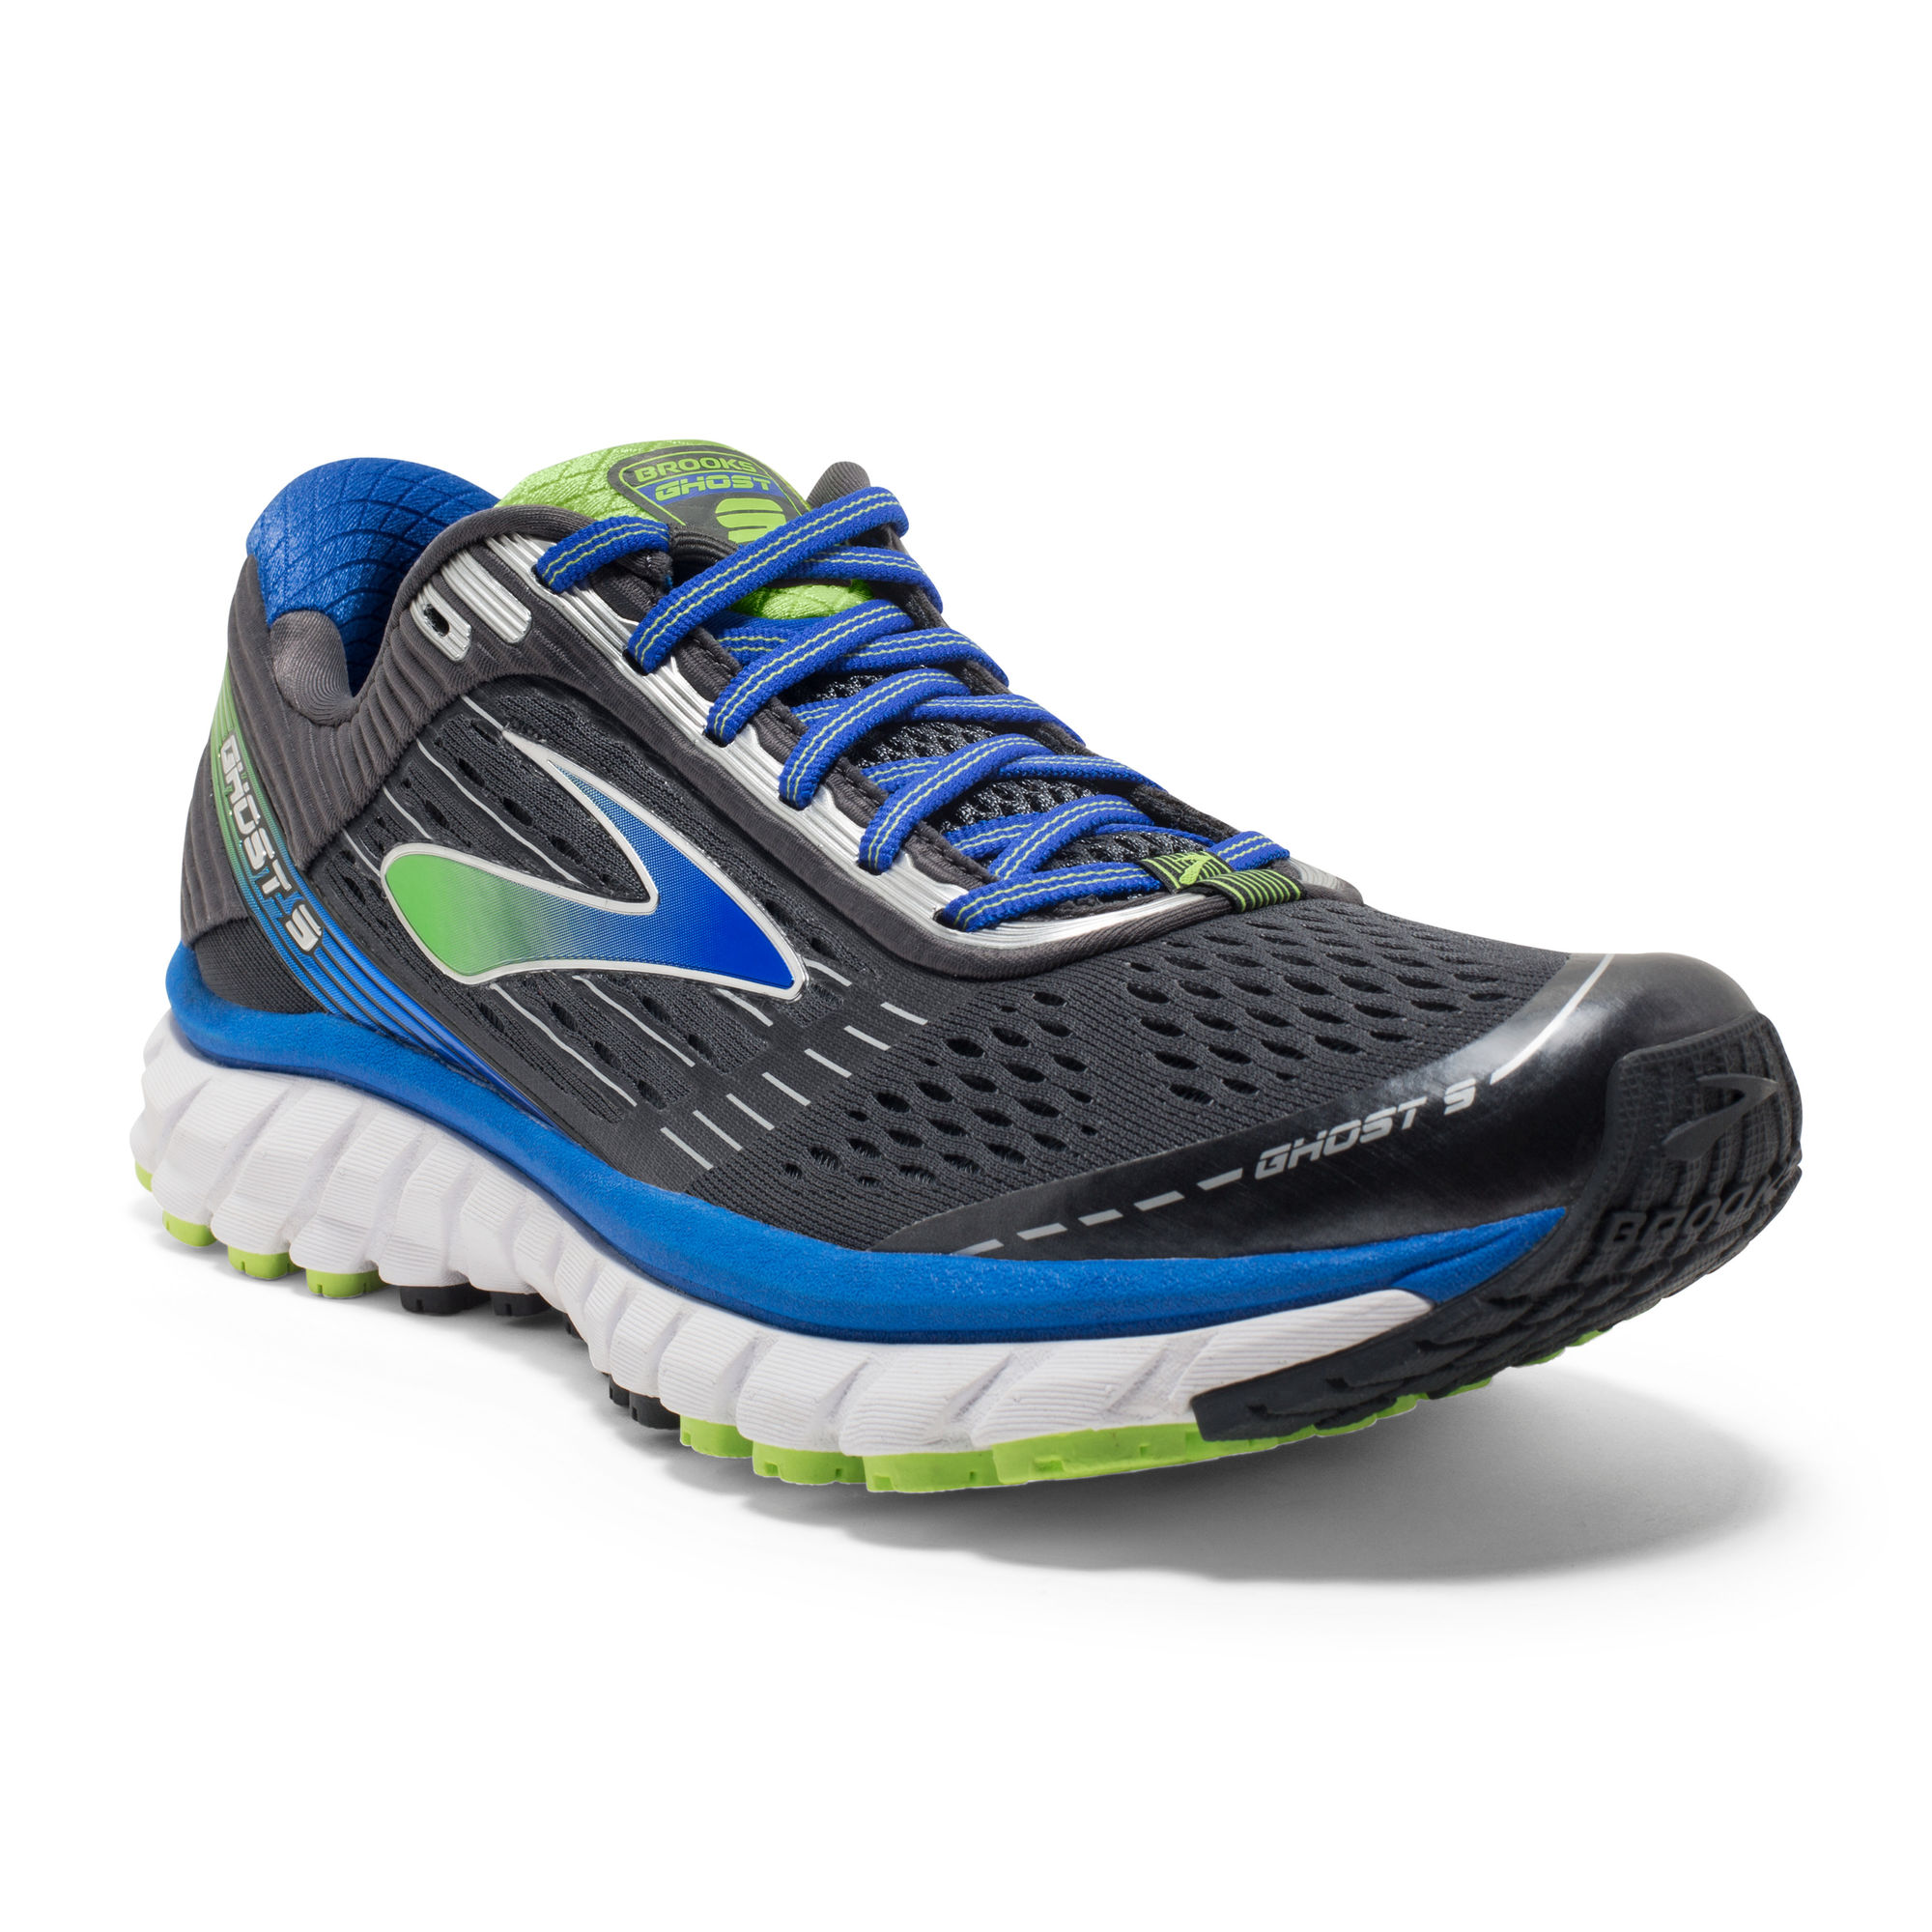 Brooks Ghost 9 in Electric Blue/Lme